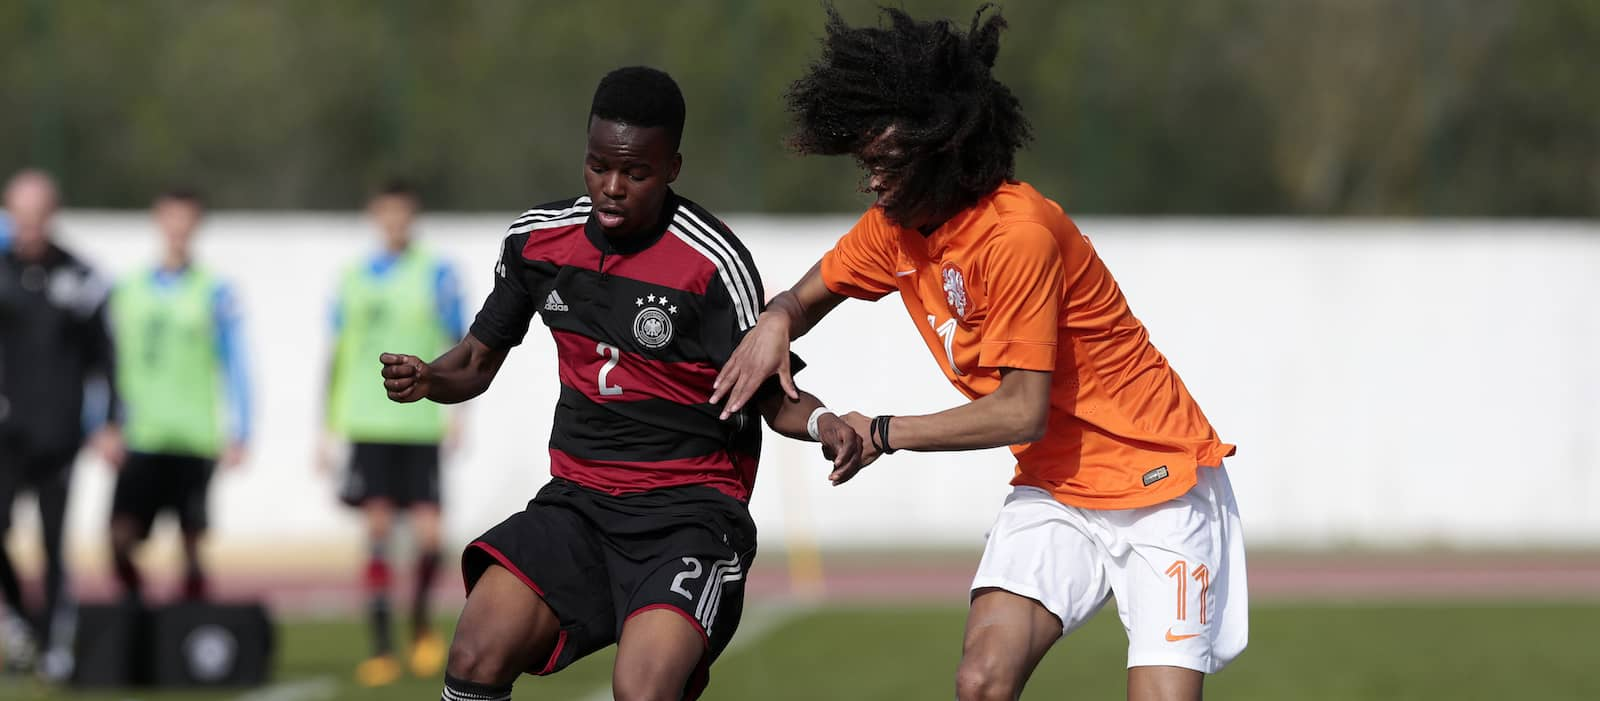 Manchester United youngster Tahith Chong suffers serious knee injury